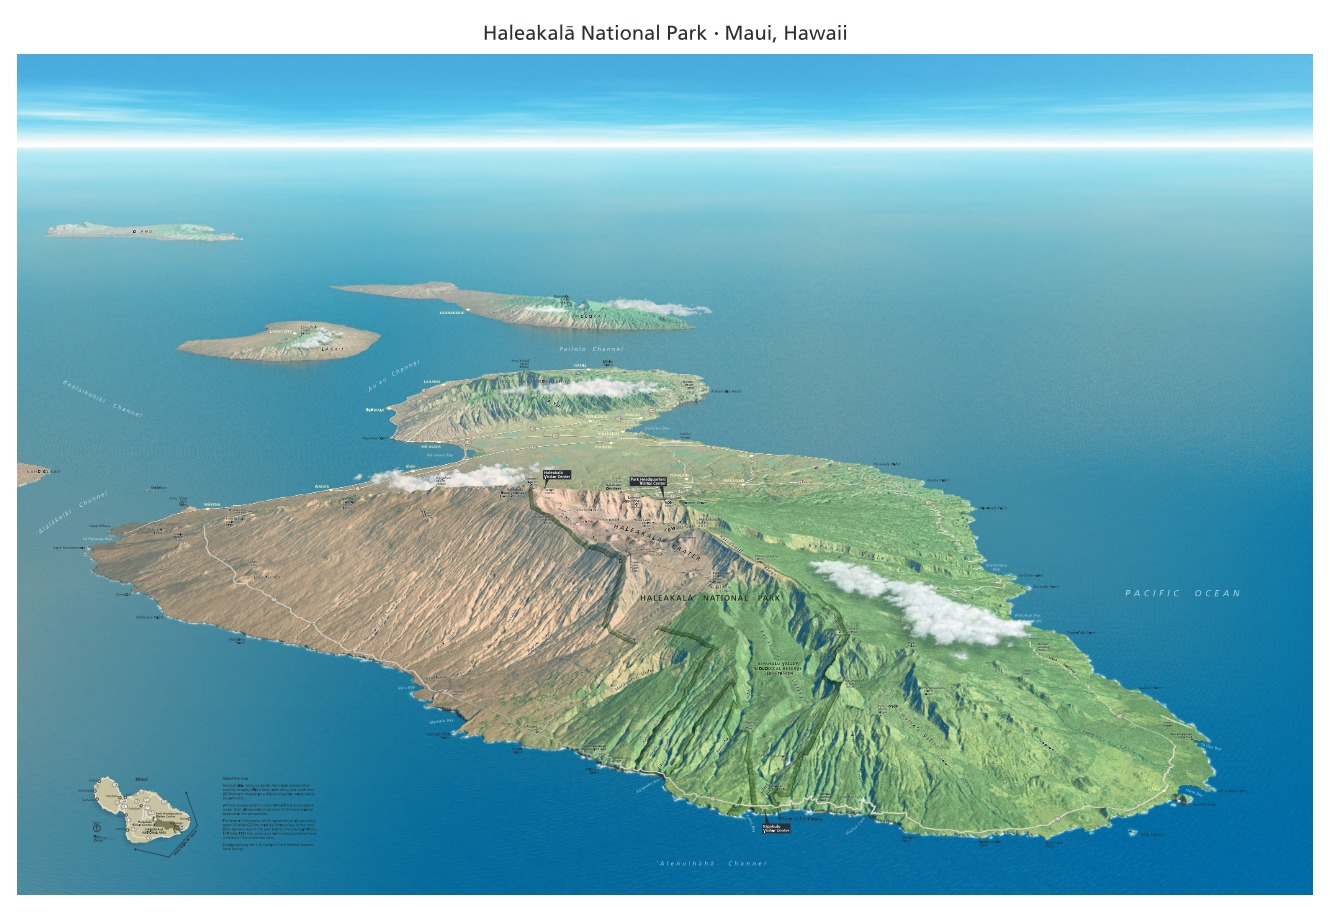 Haleakala Panorama (view From Southeast) - From park brochure